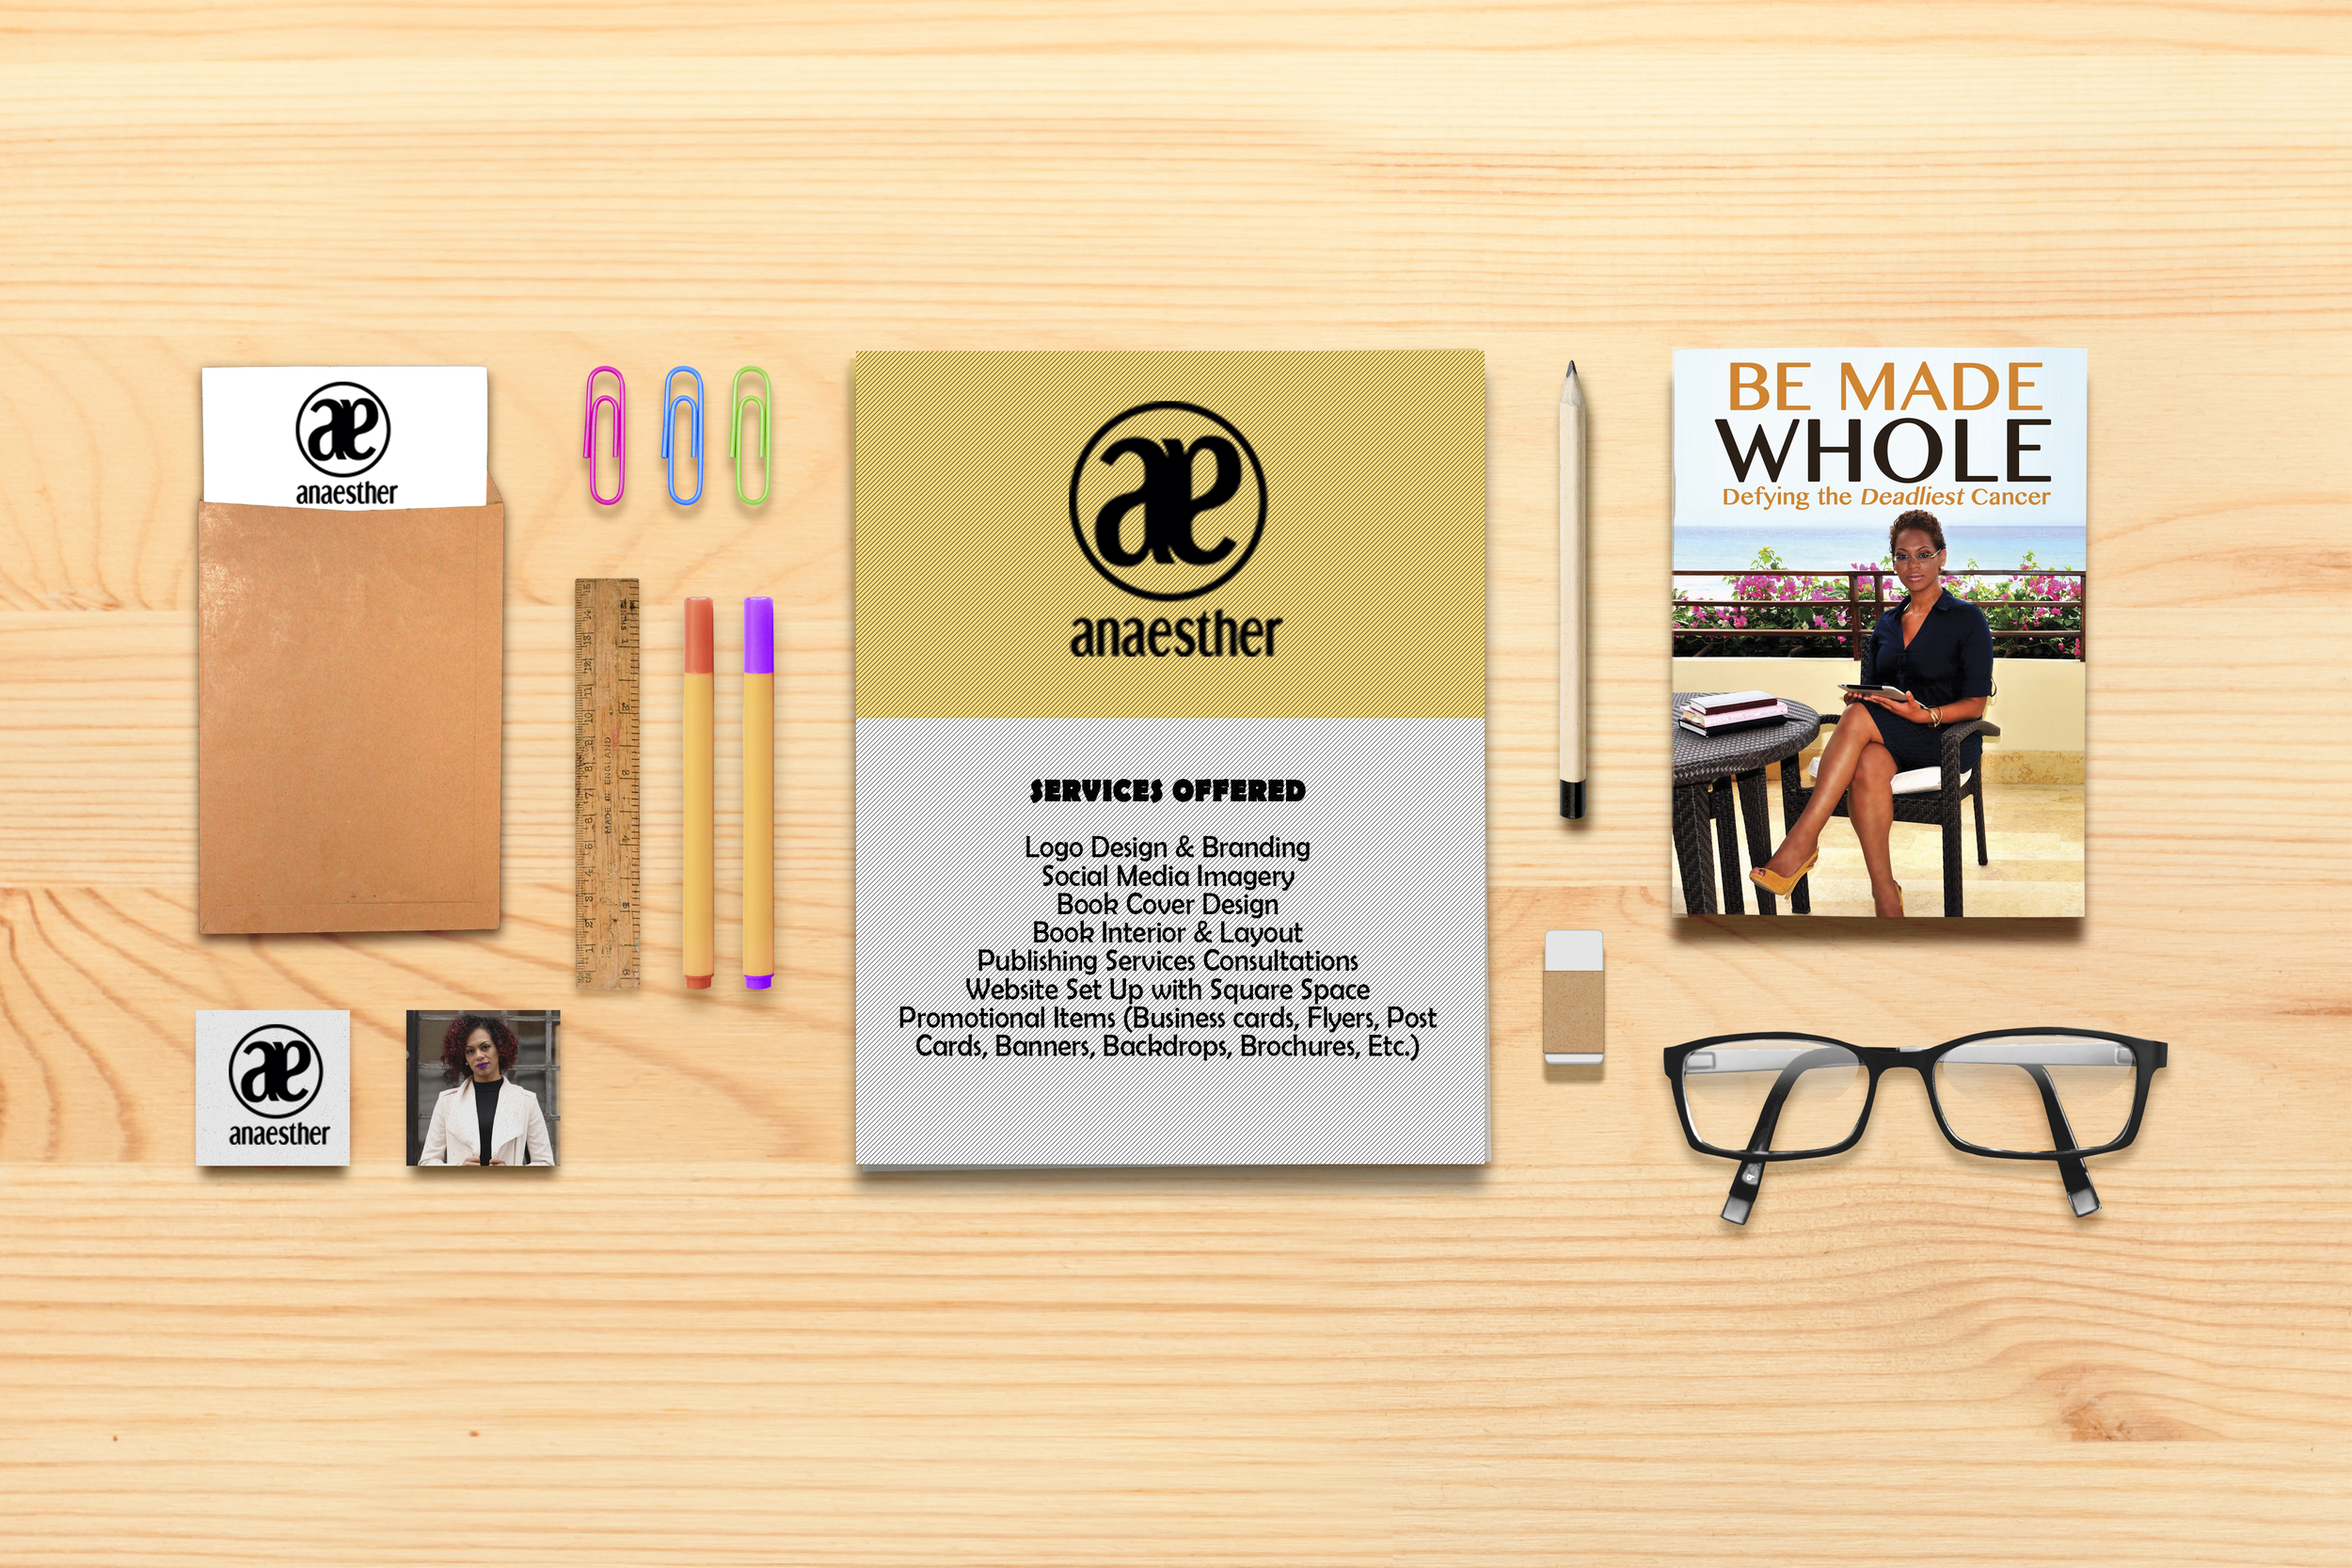 [ STATIONARY & PROMOTIONAL ITEMS ]